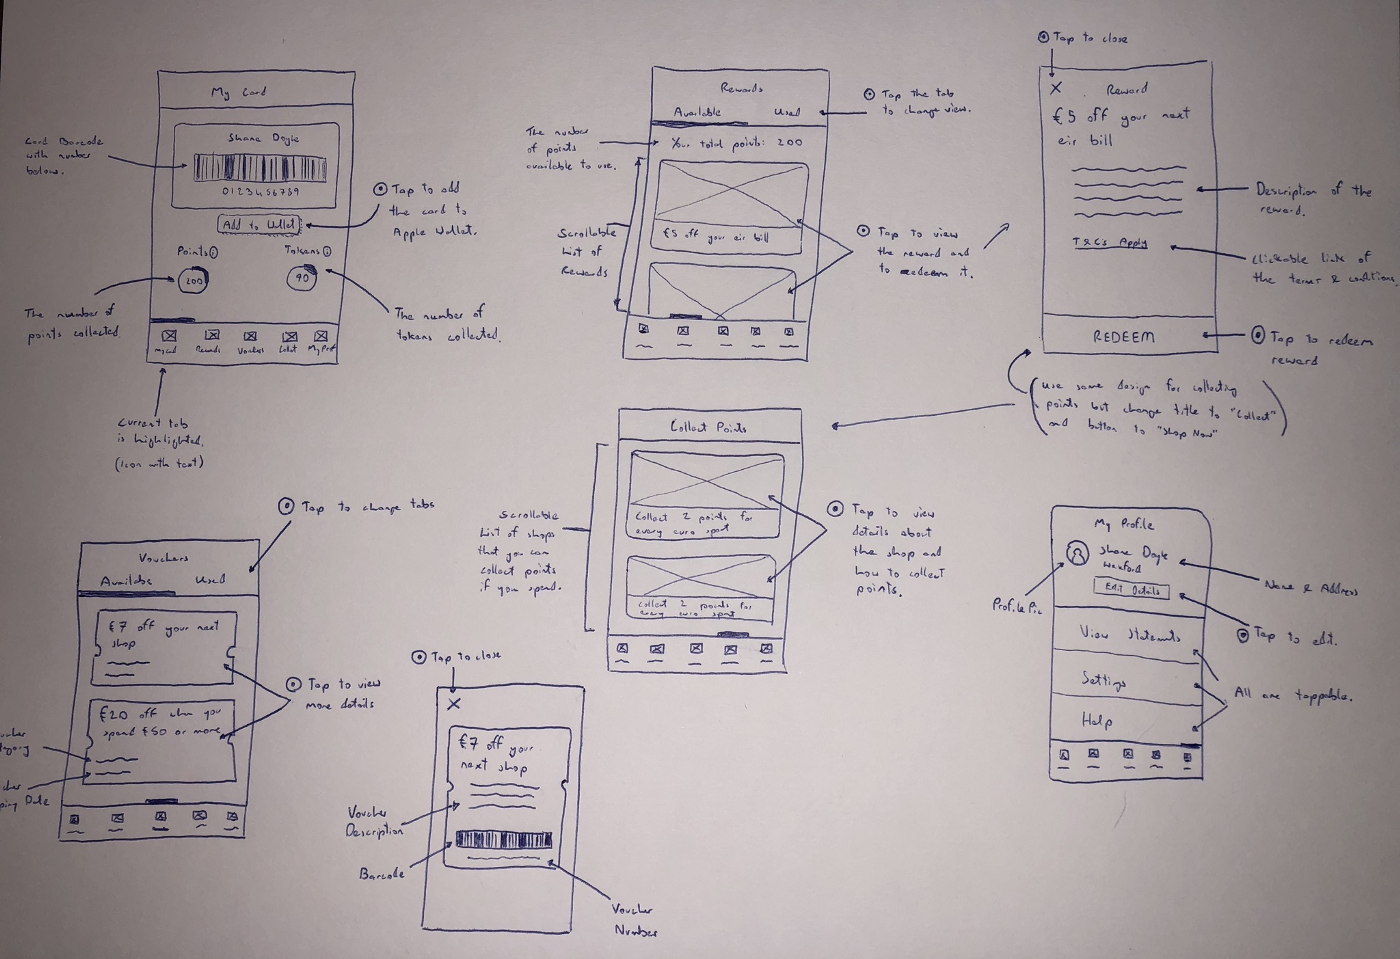 Pen and paper sketches of the app.